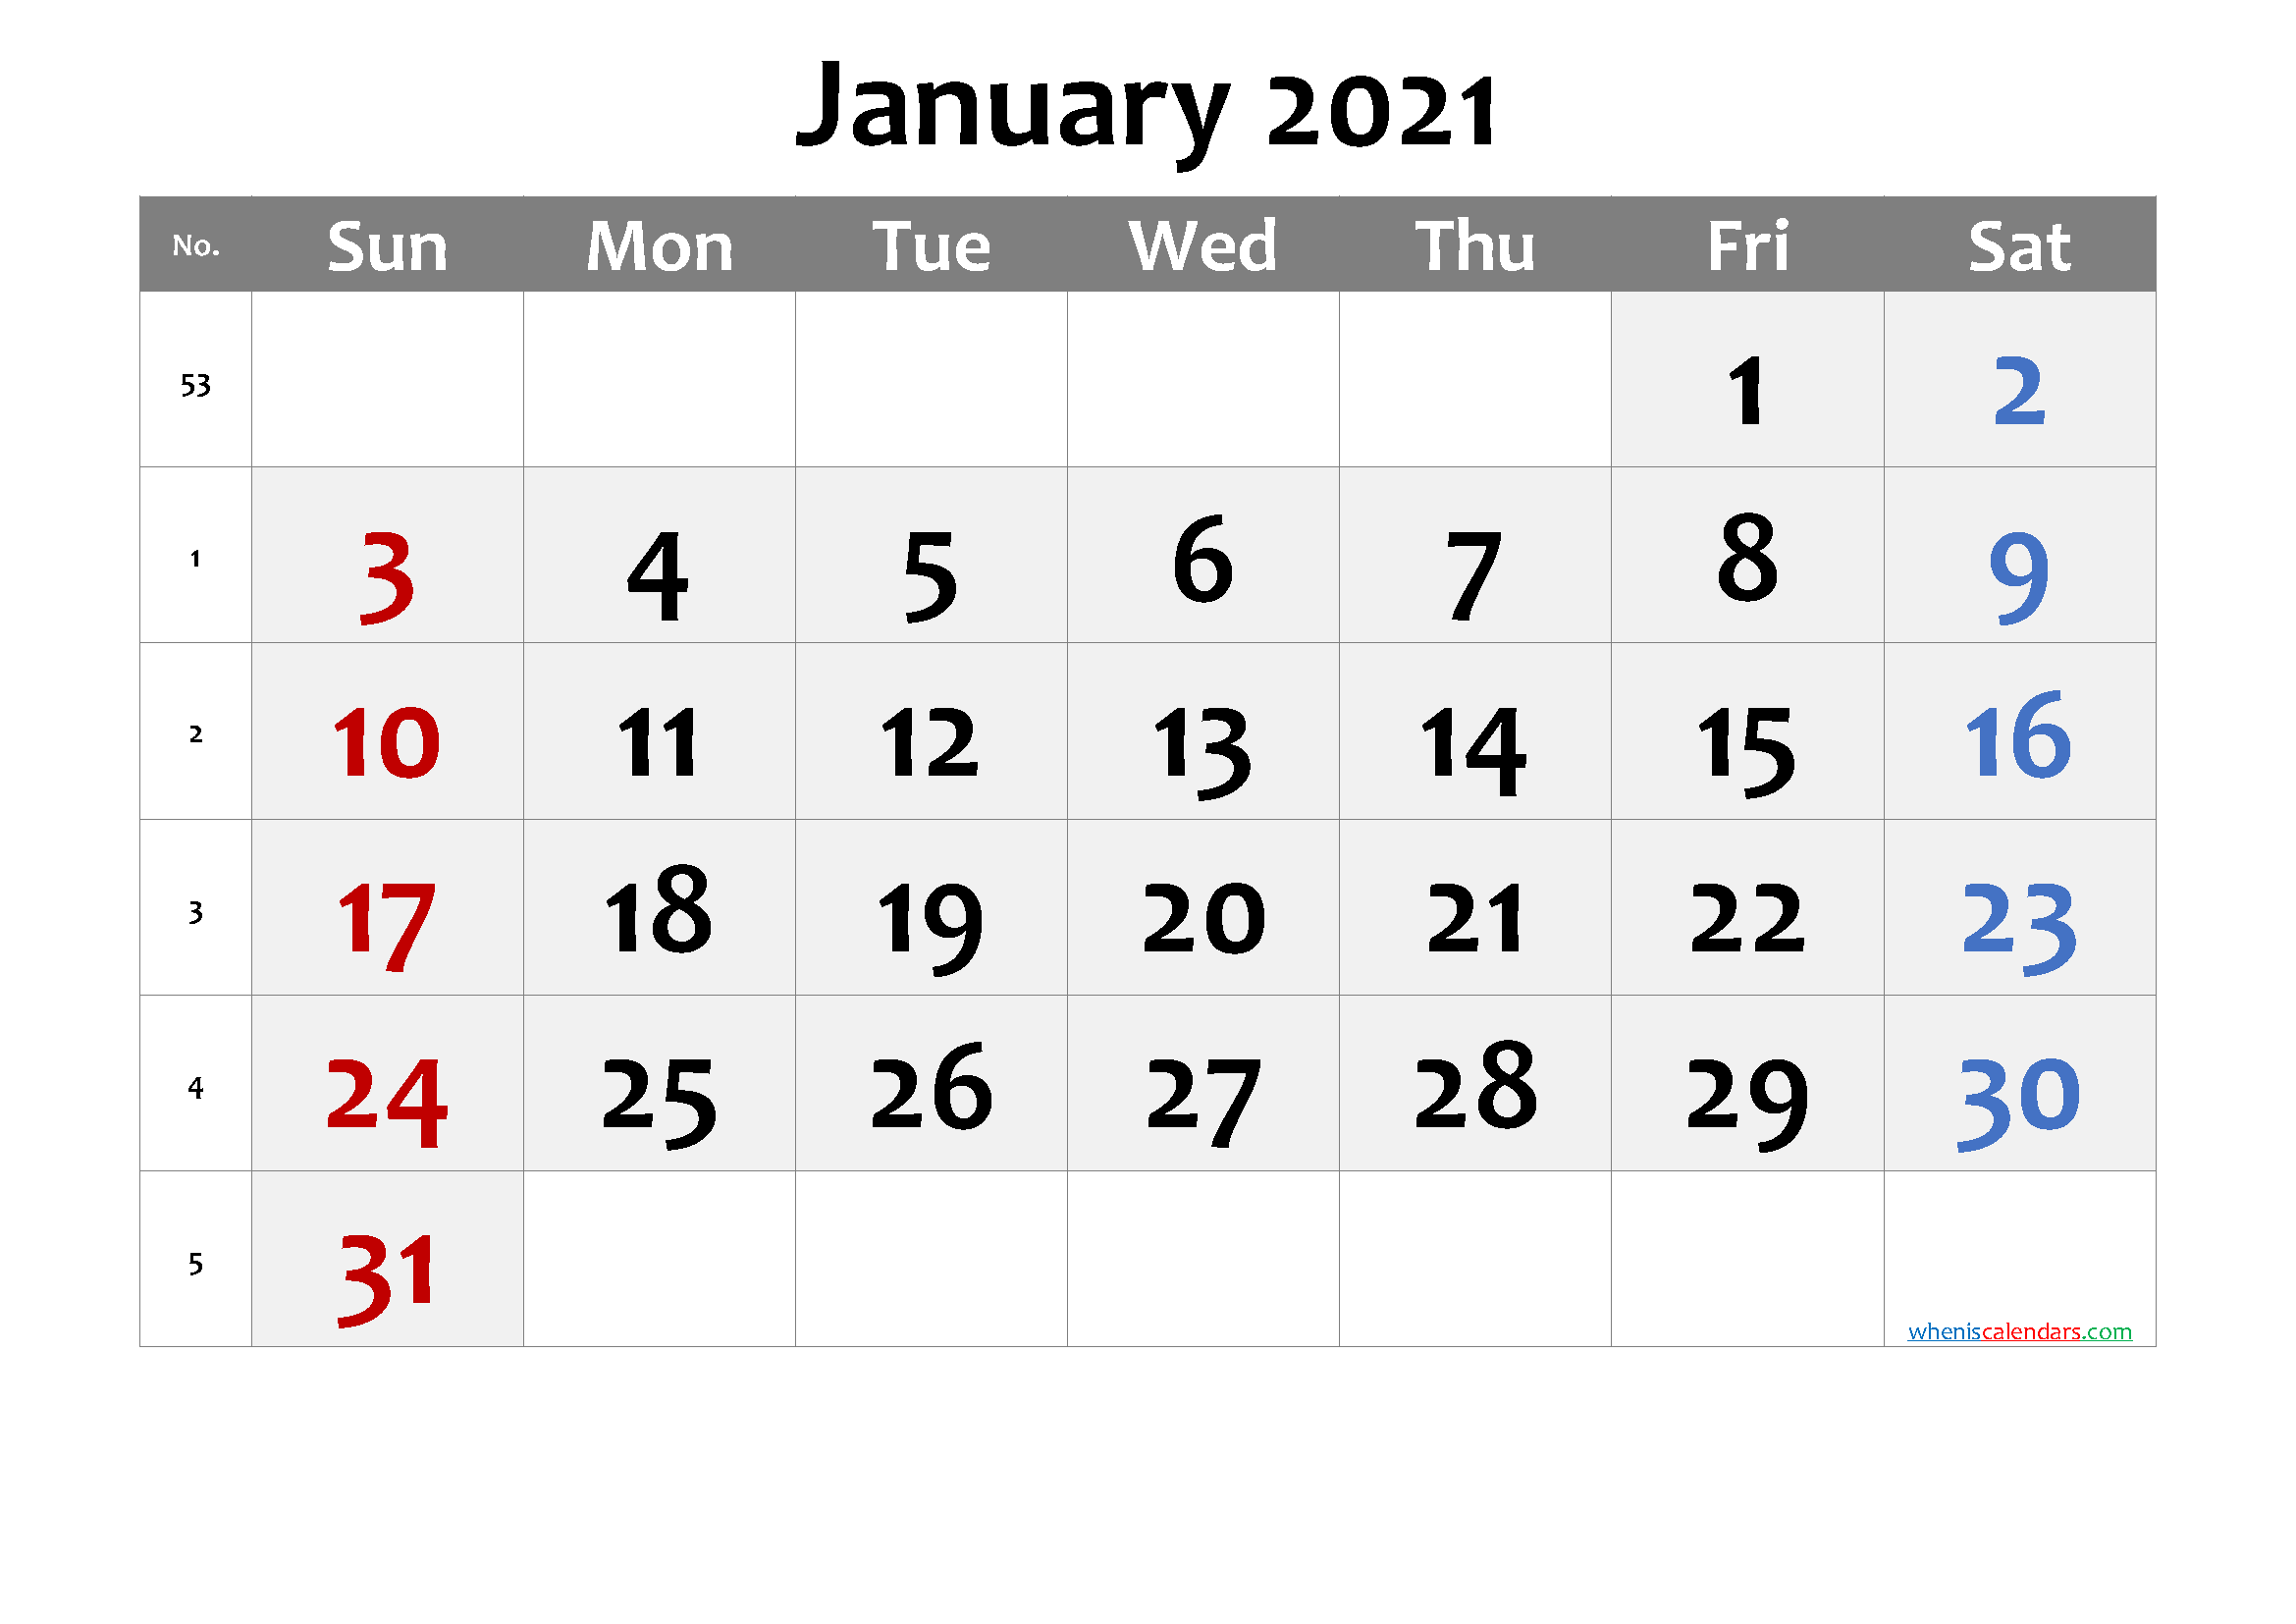 January 2021 Printable Calendar with Week Numbers